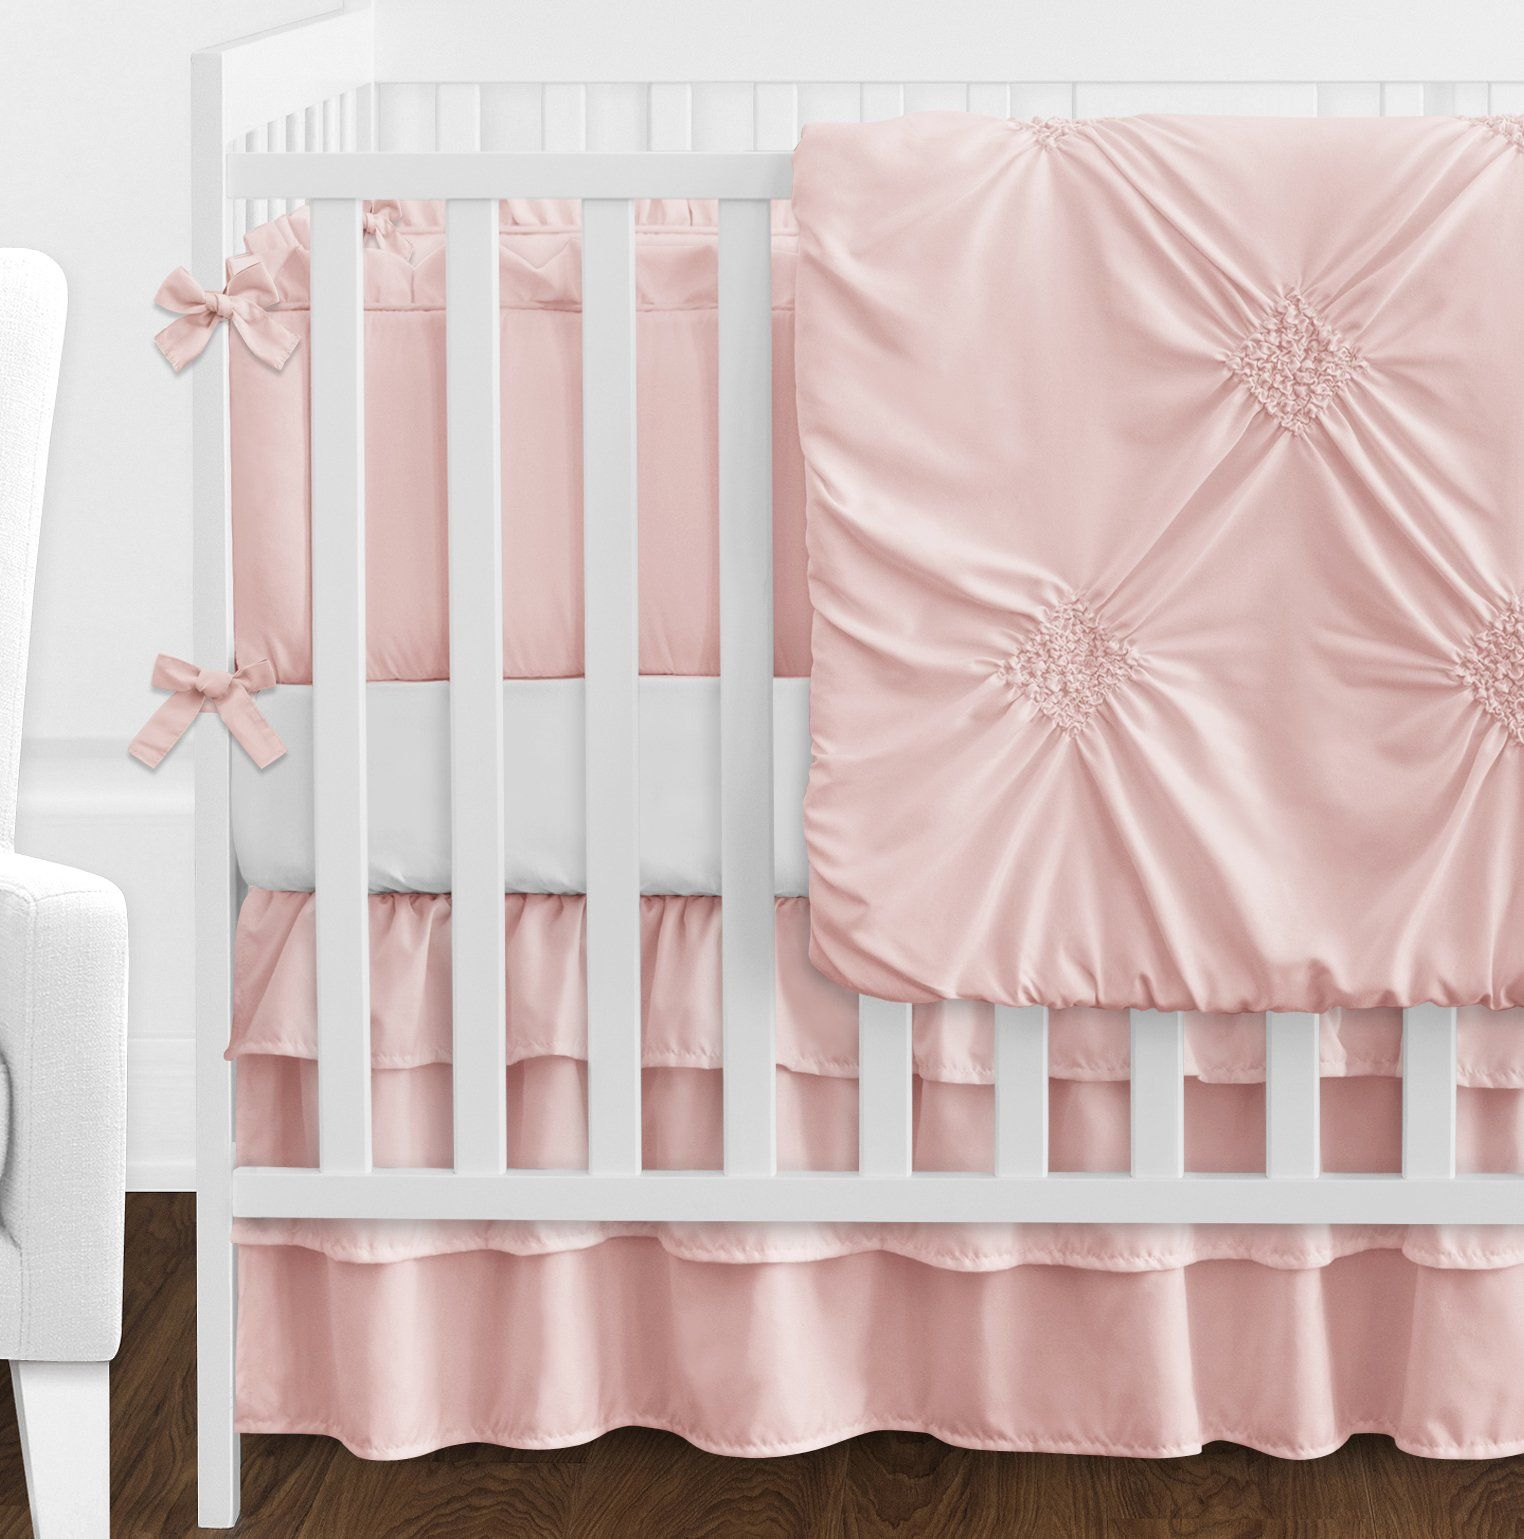 Solid Color Blush Pink Shabby Chic Harper Baby Girl Crib Bedding Set With Bumper By Sweet Jojo Designs 9 Pie Crib Bedding Girl Bed